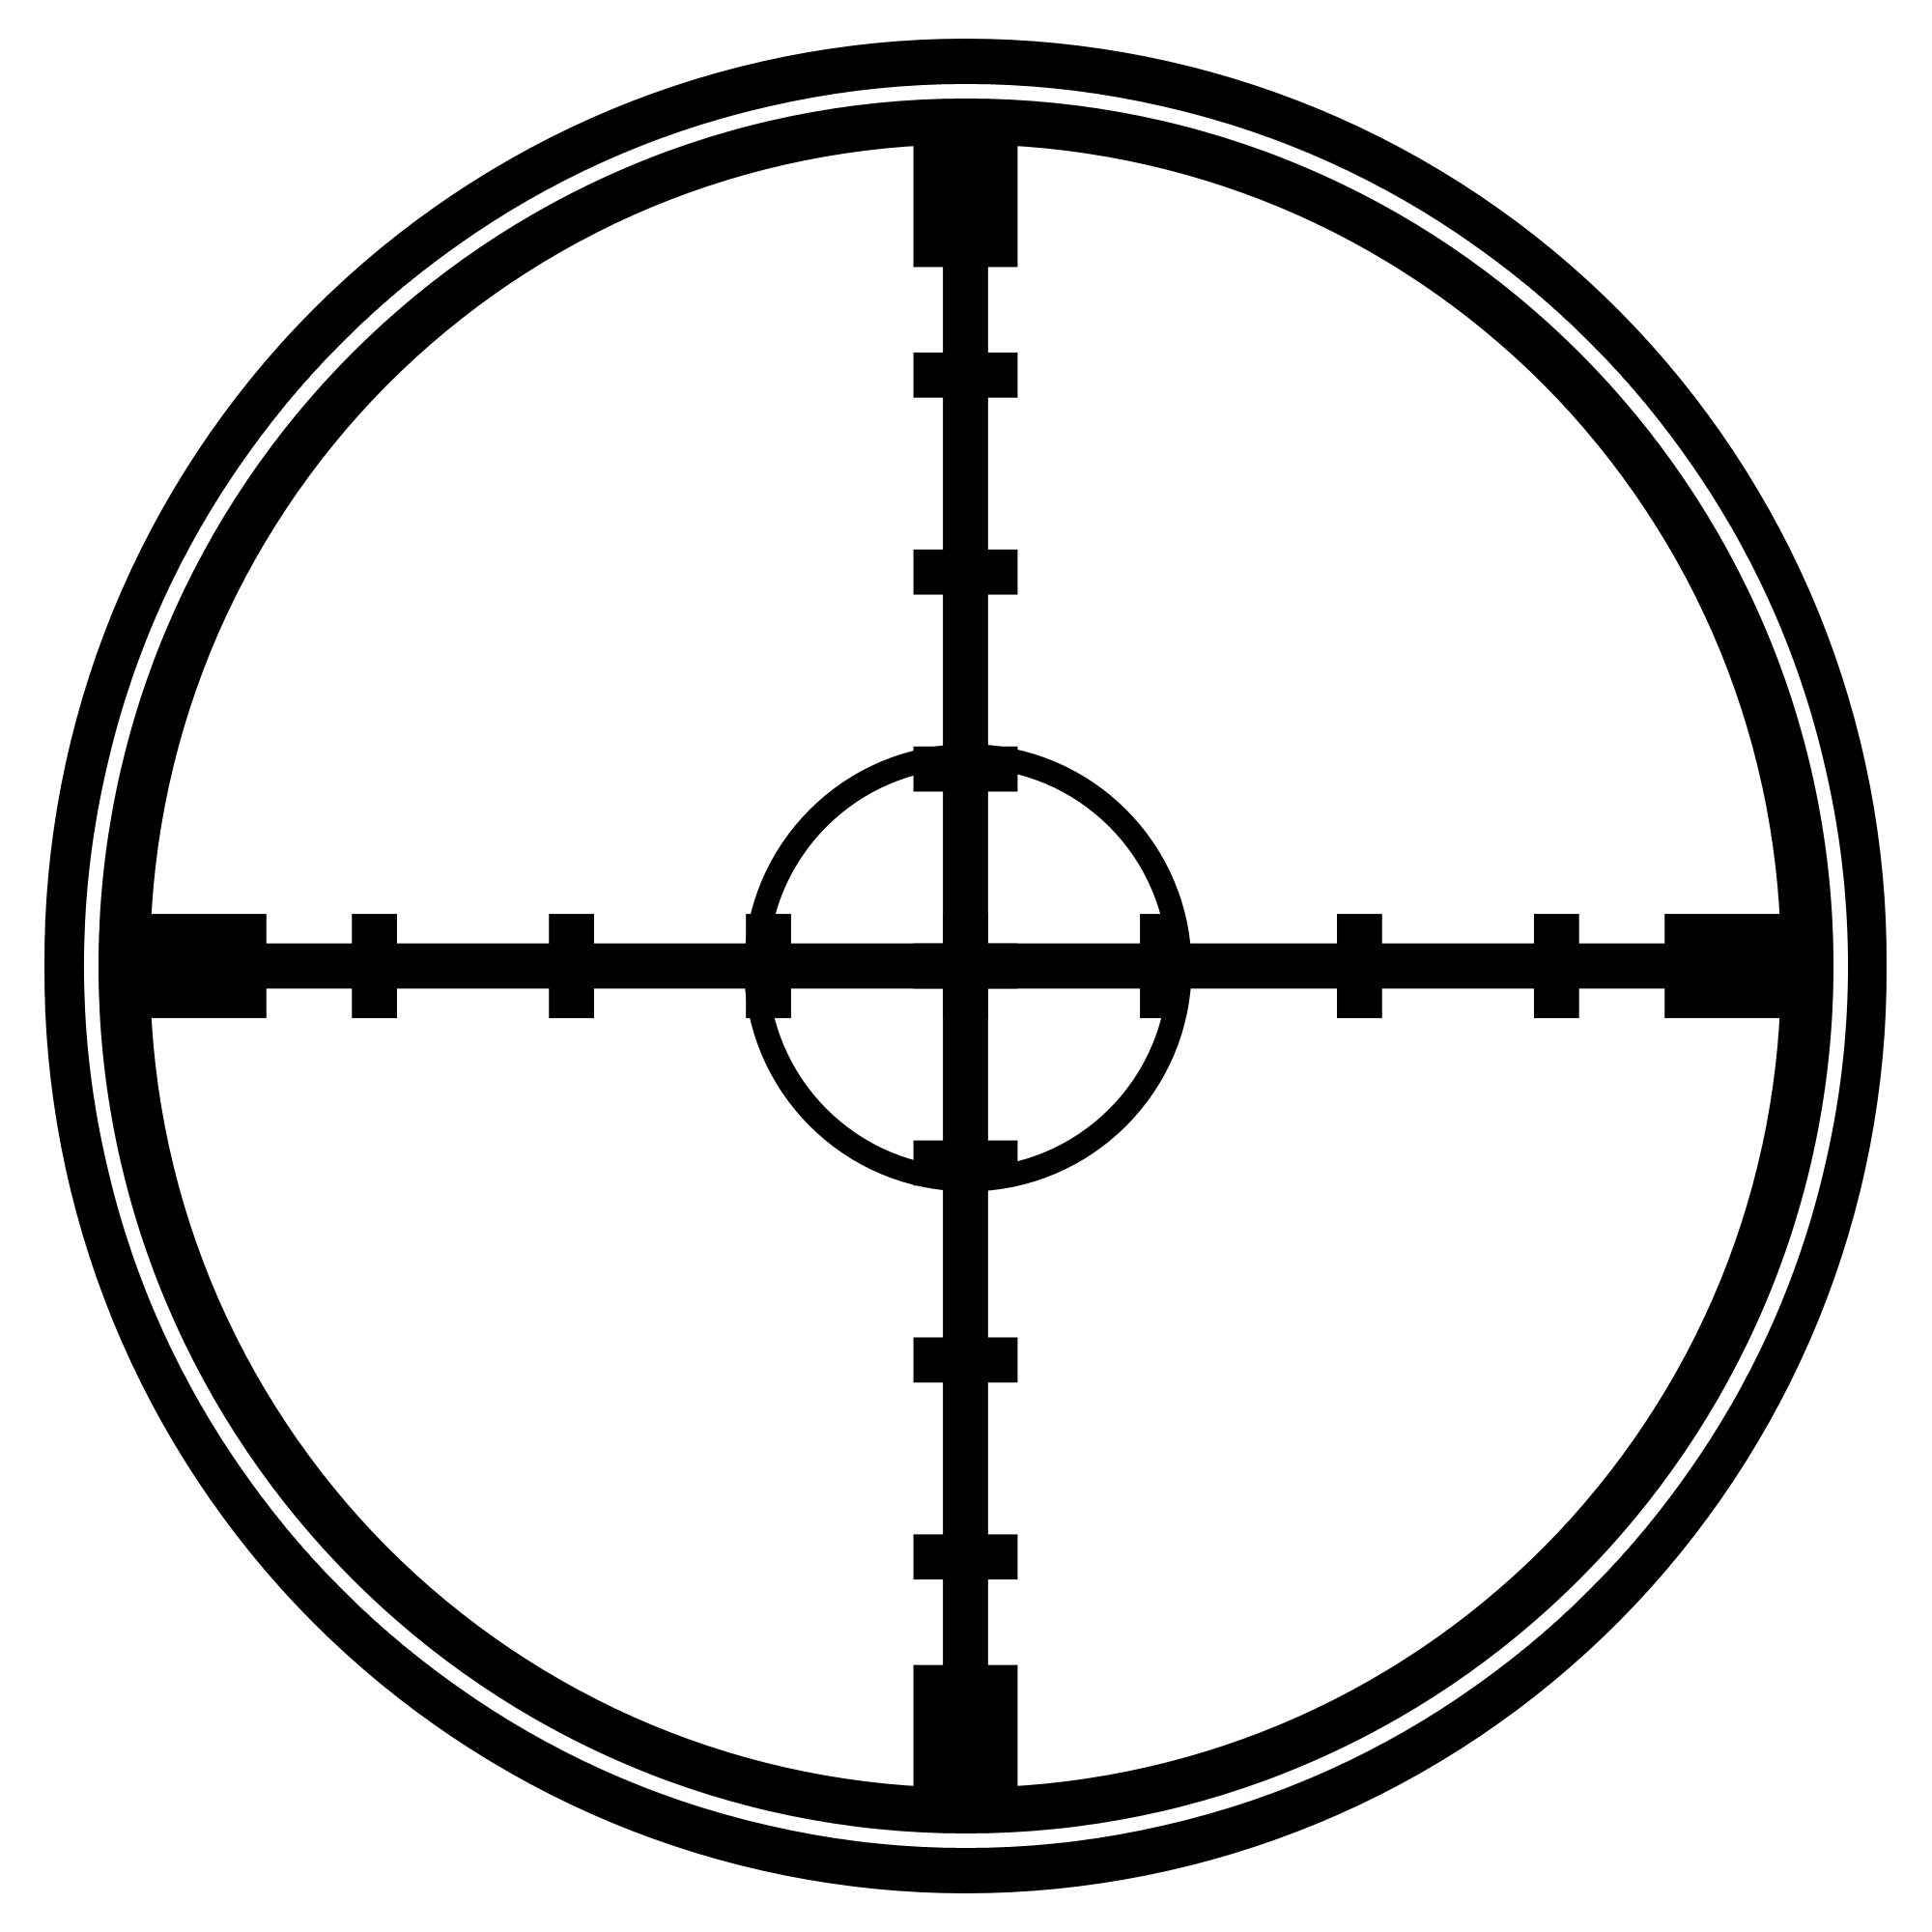 Sniper images pngpix transparent. Crosshair png picture library download